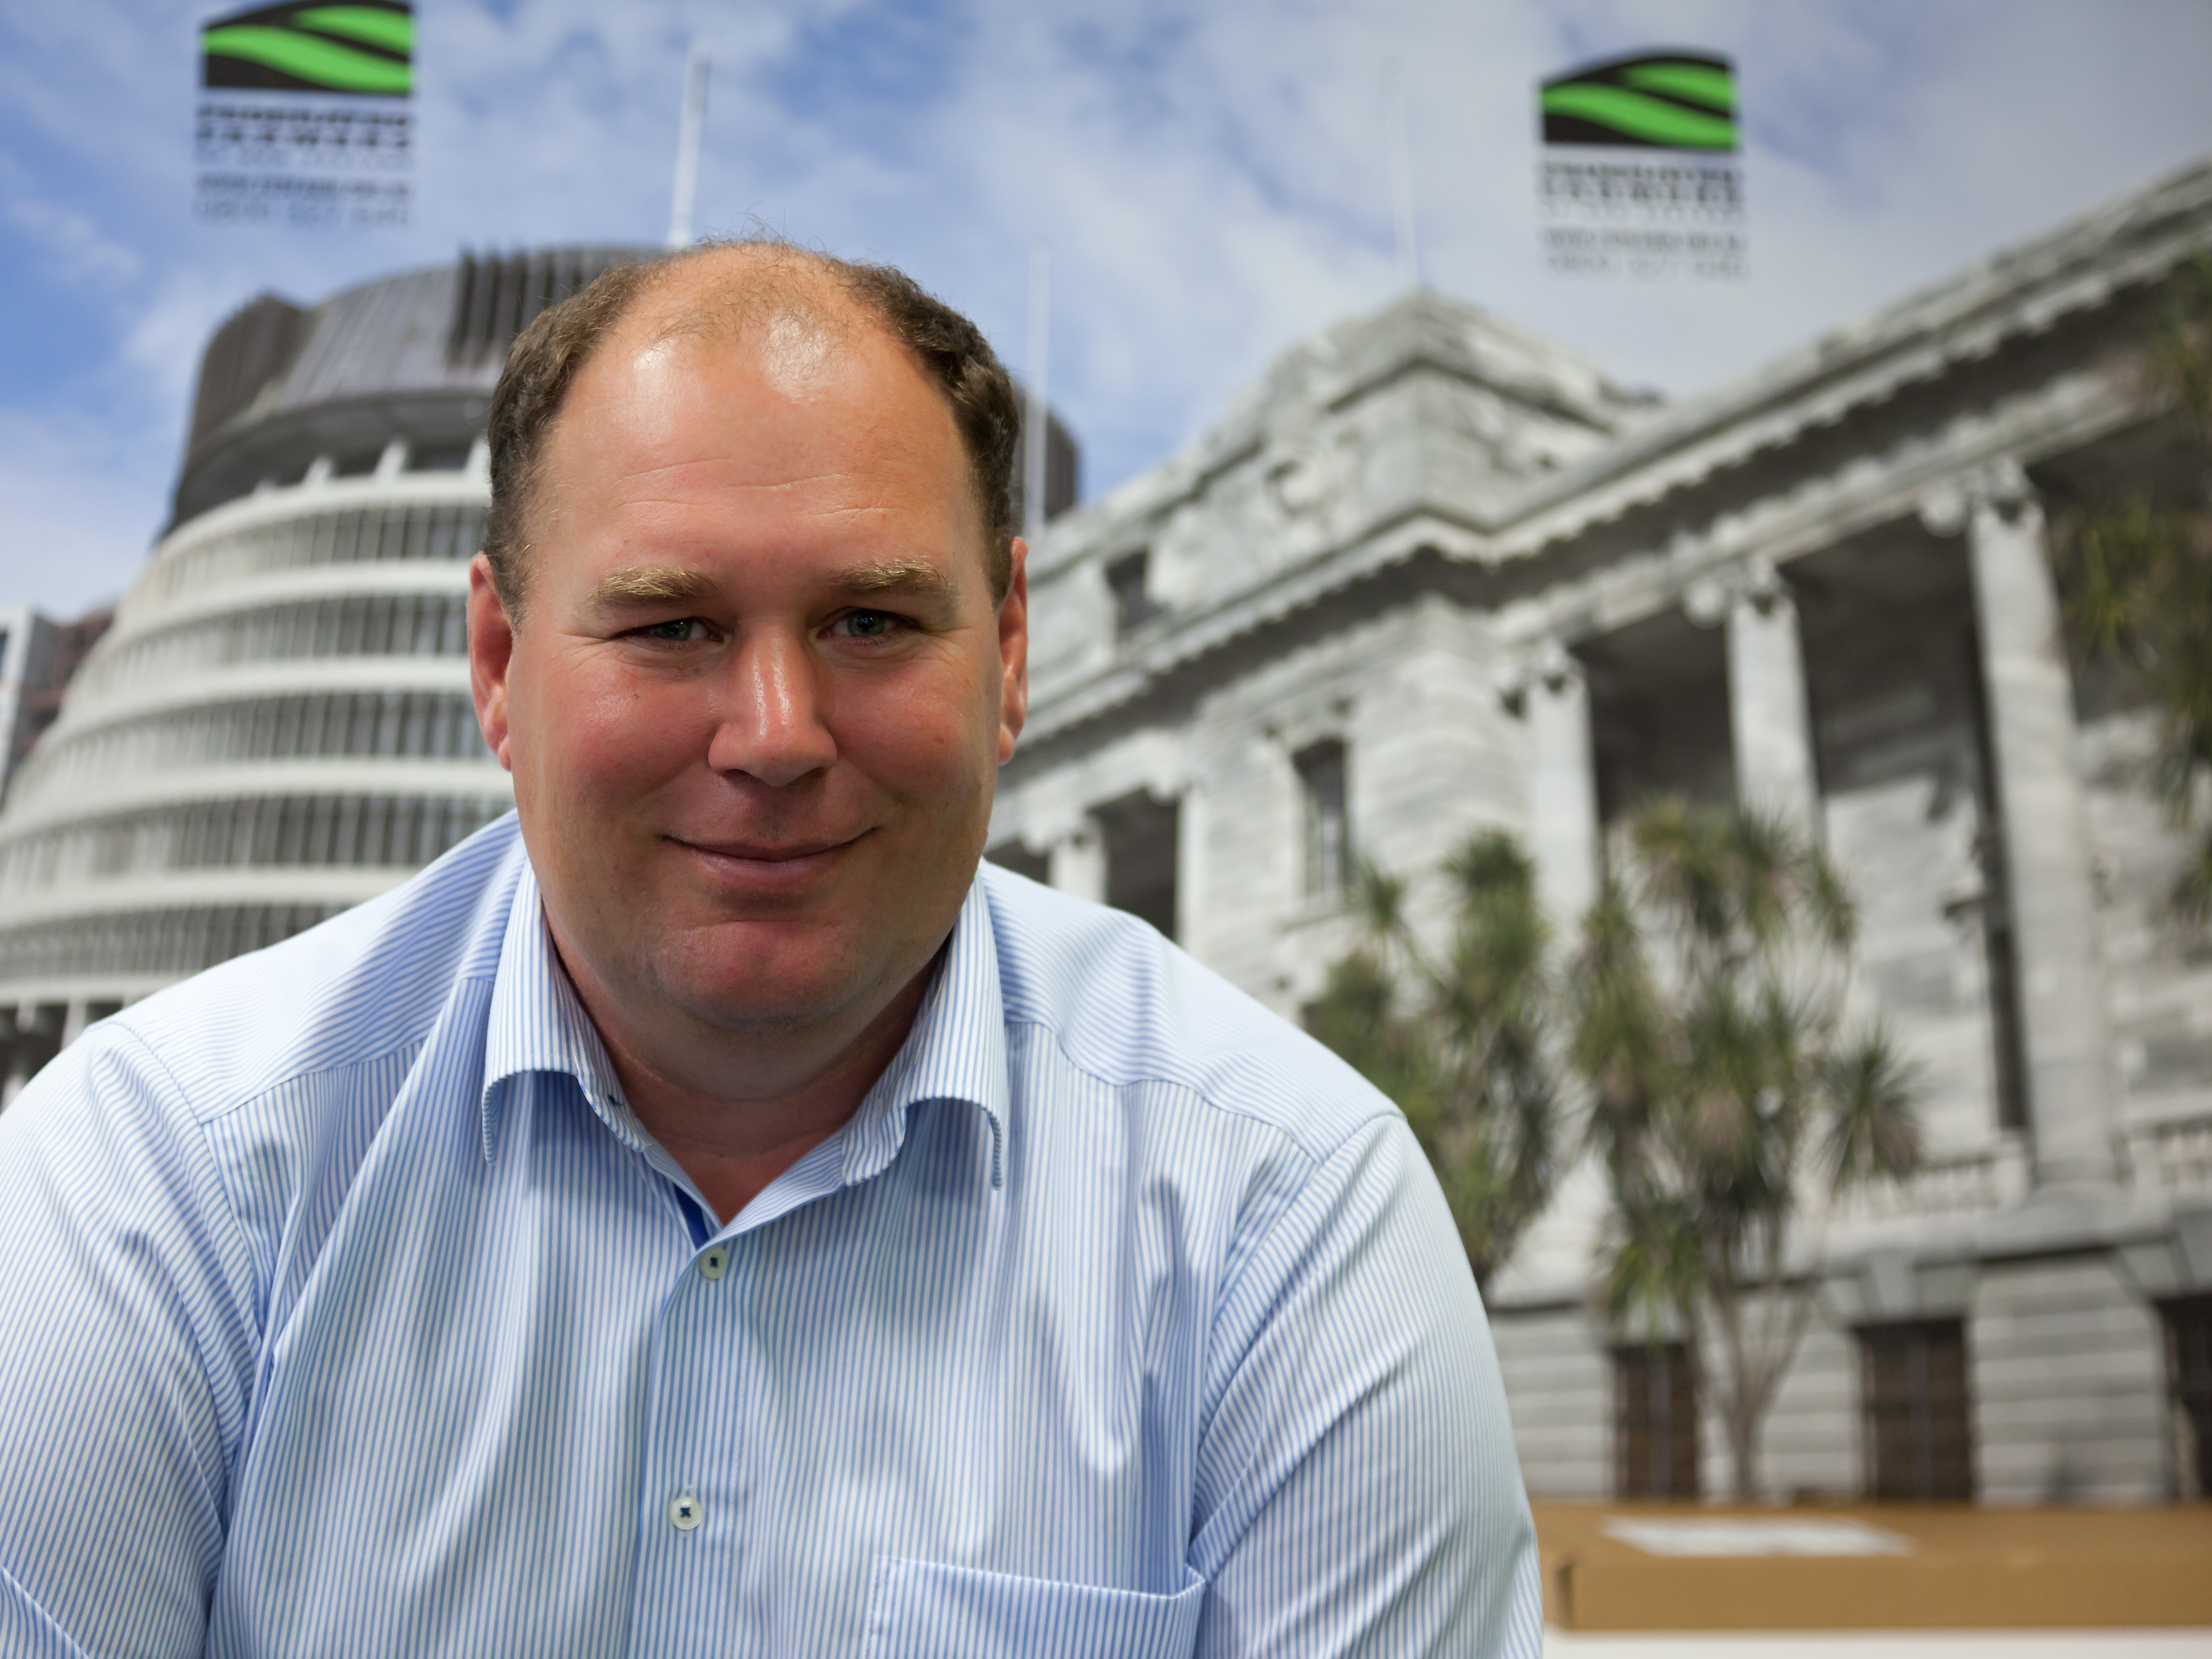 Andrew Hoggard, Federated Farmers Dairy Industry Chairperson